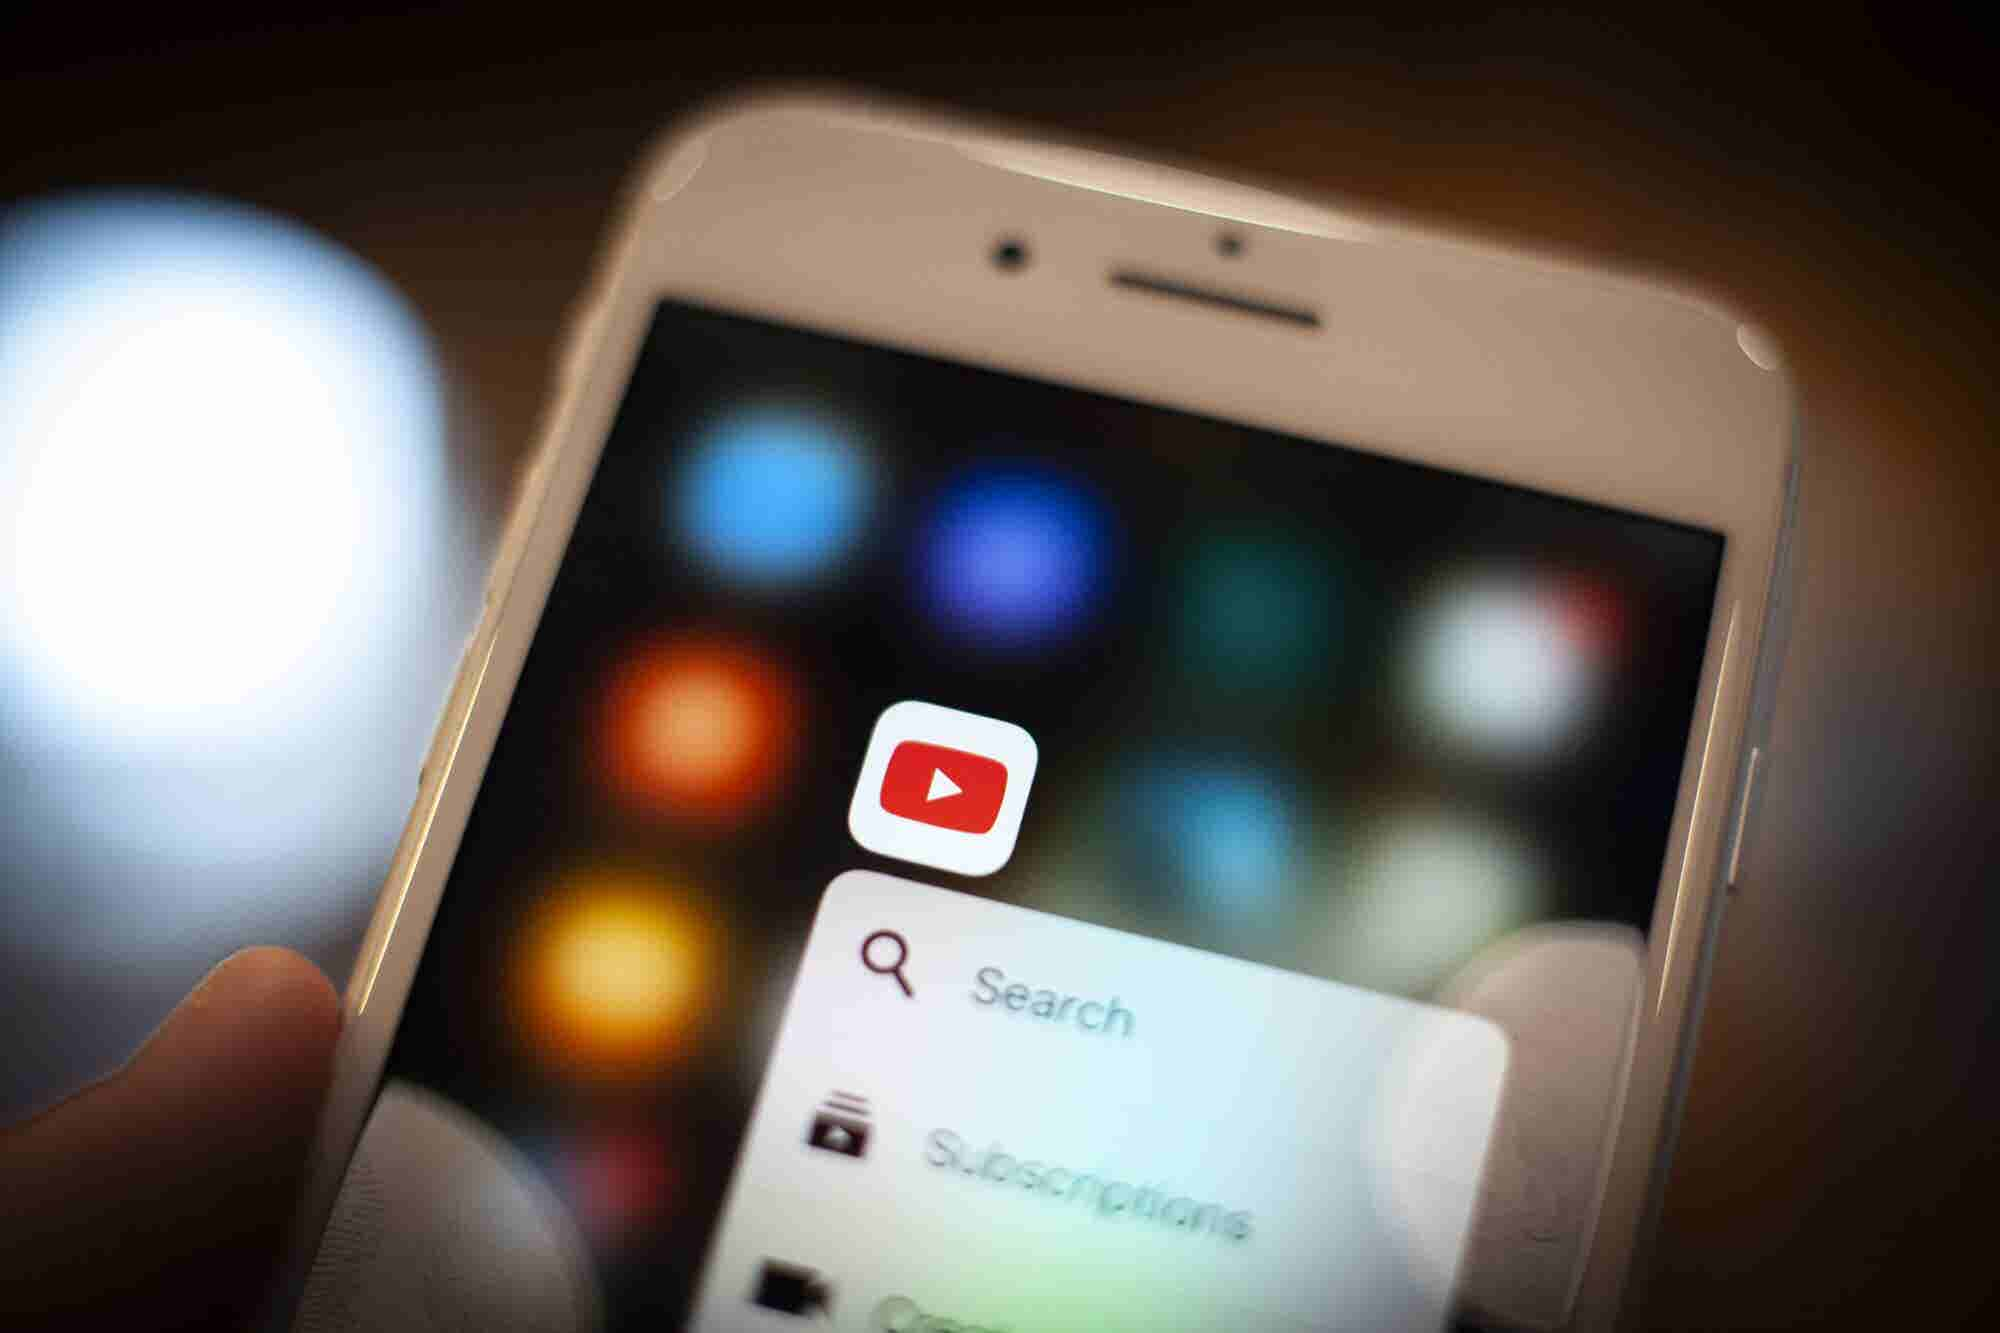 10 Inspirational and Motivational YouTube Channels You Should Watch